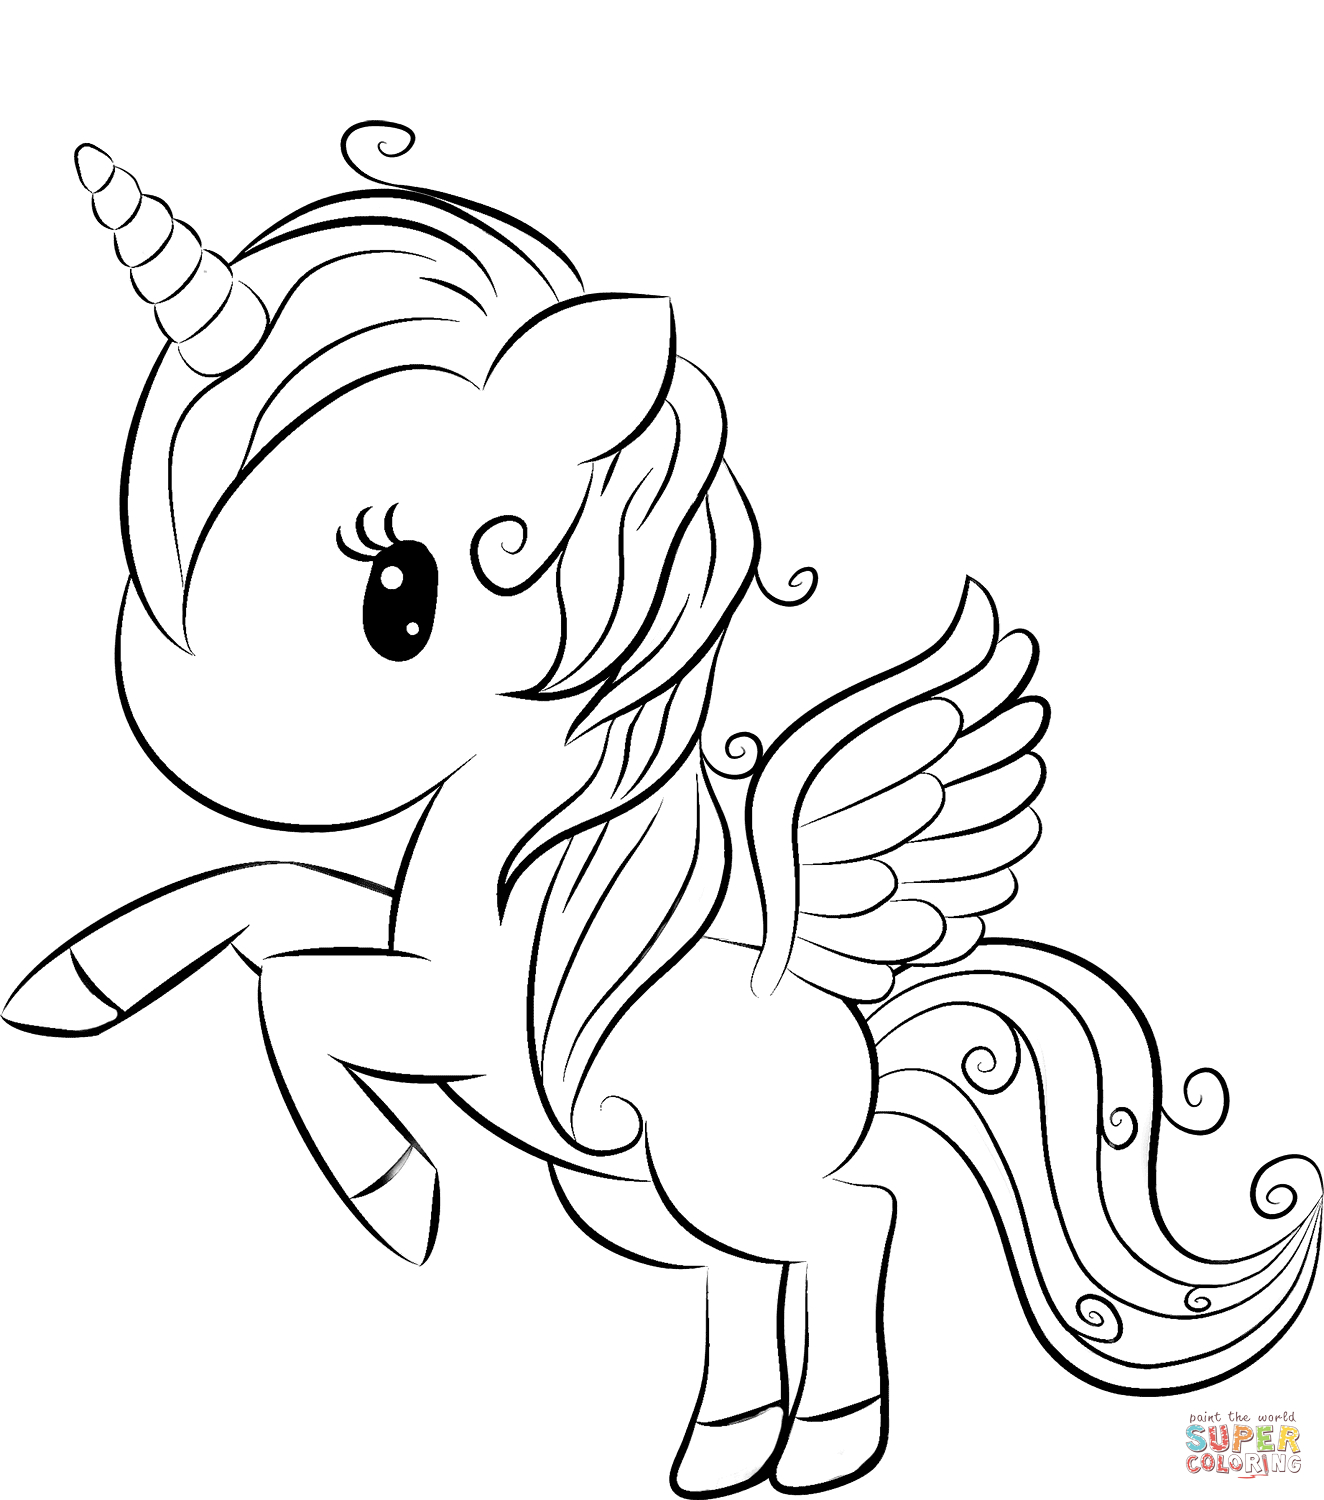 Cute Unicorn Coloring Page | Free Printable Coloring Pages - Free Printable Unicorn Coloring Pages